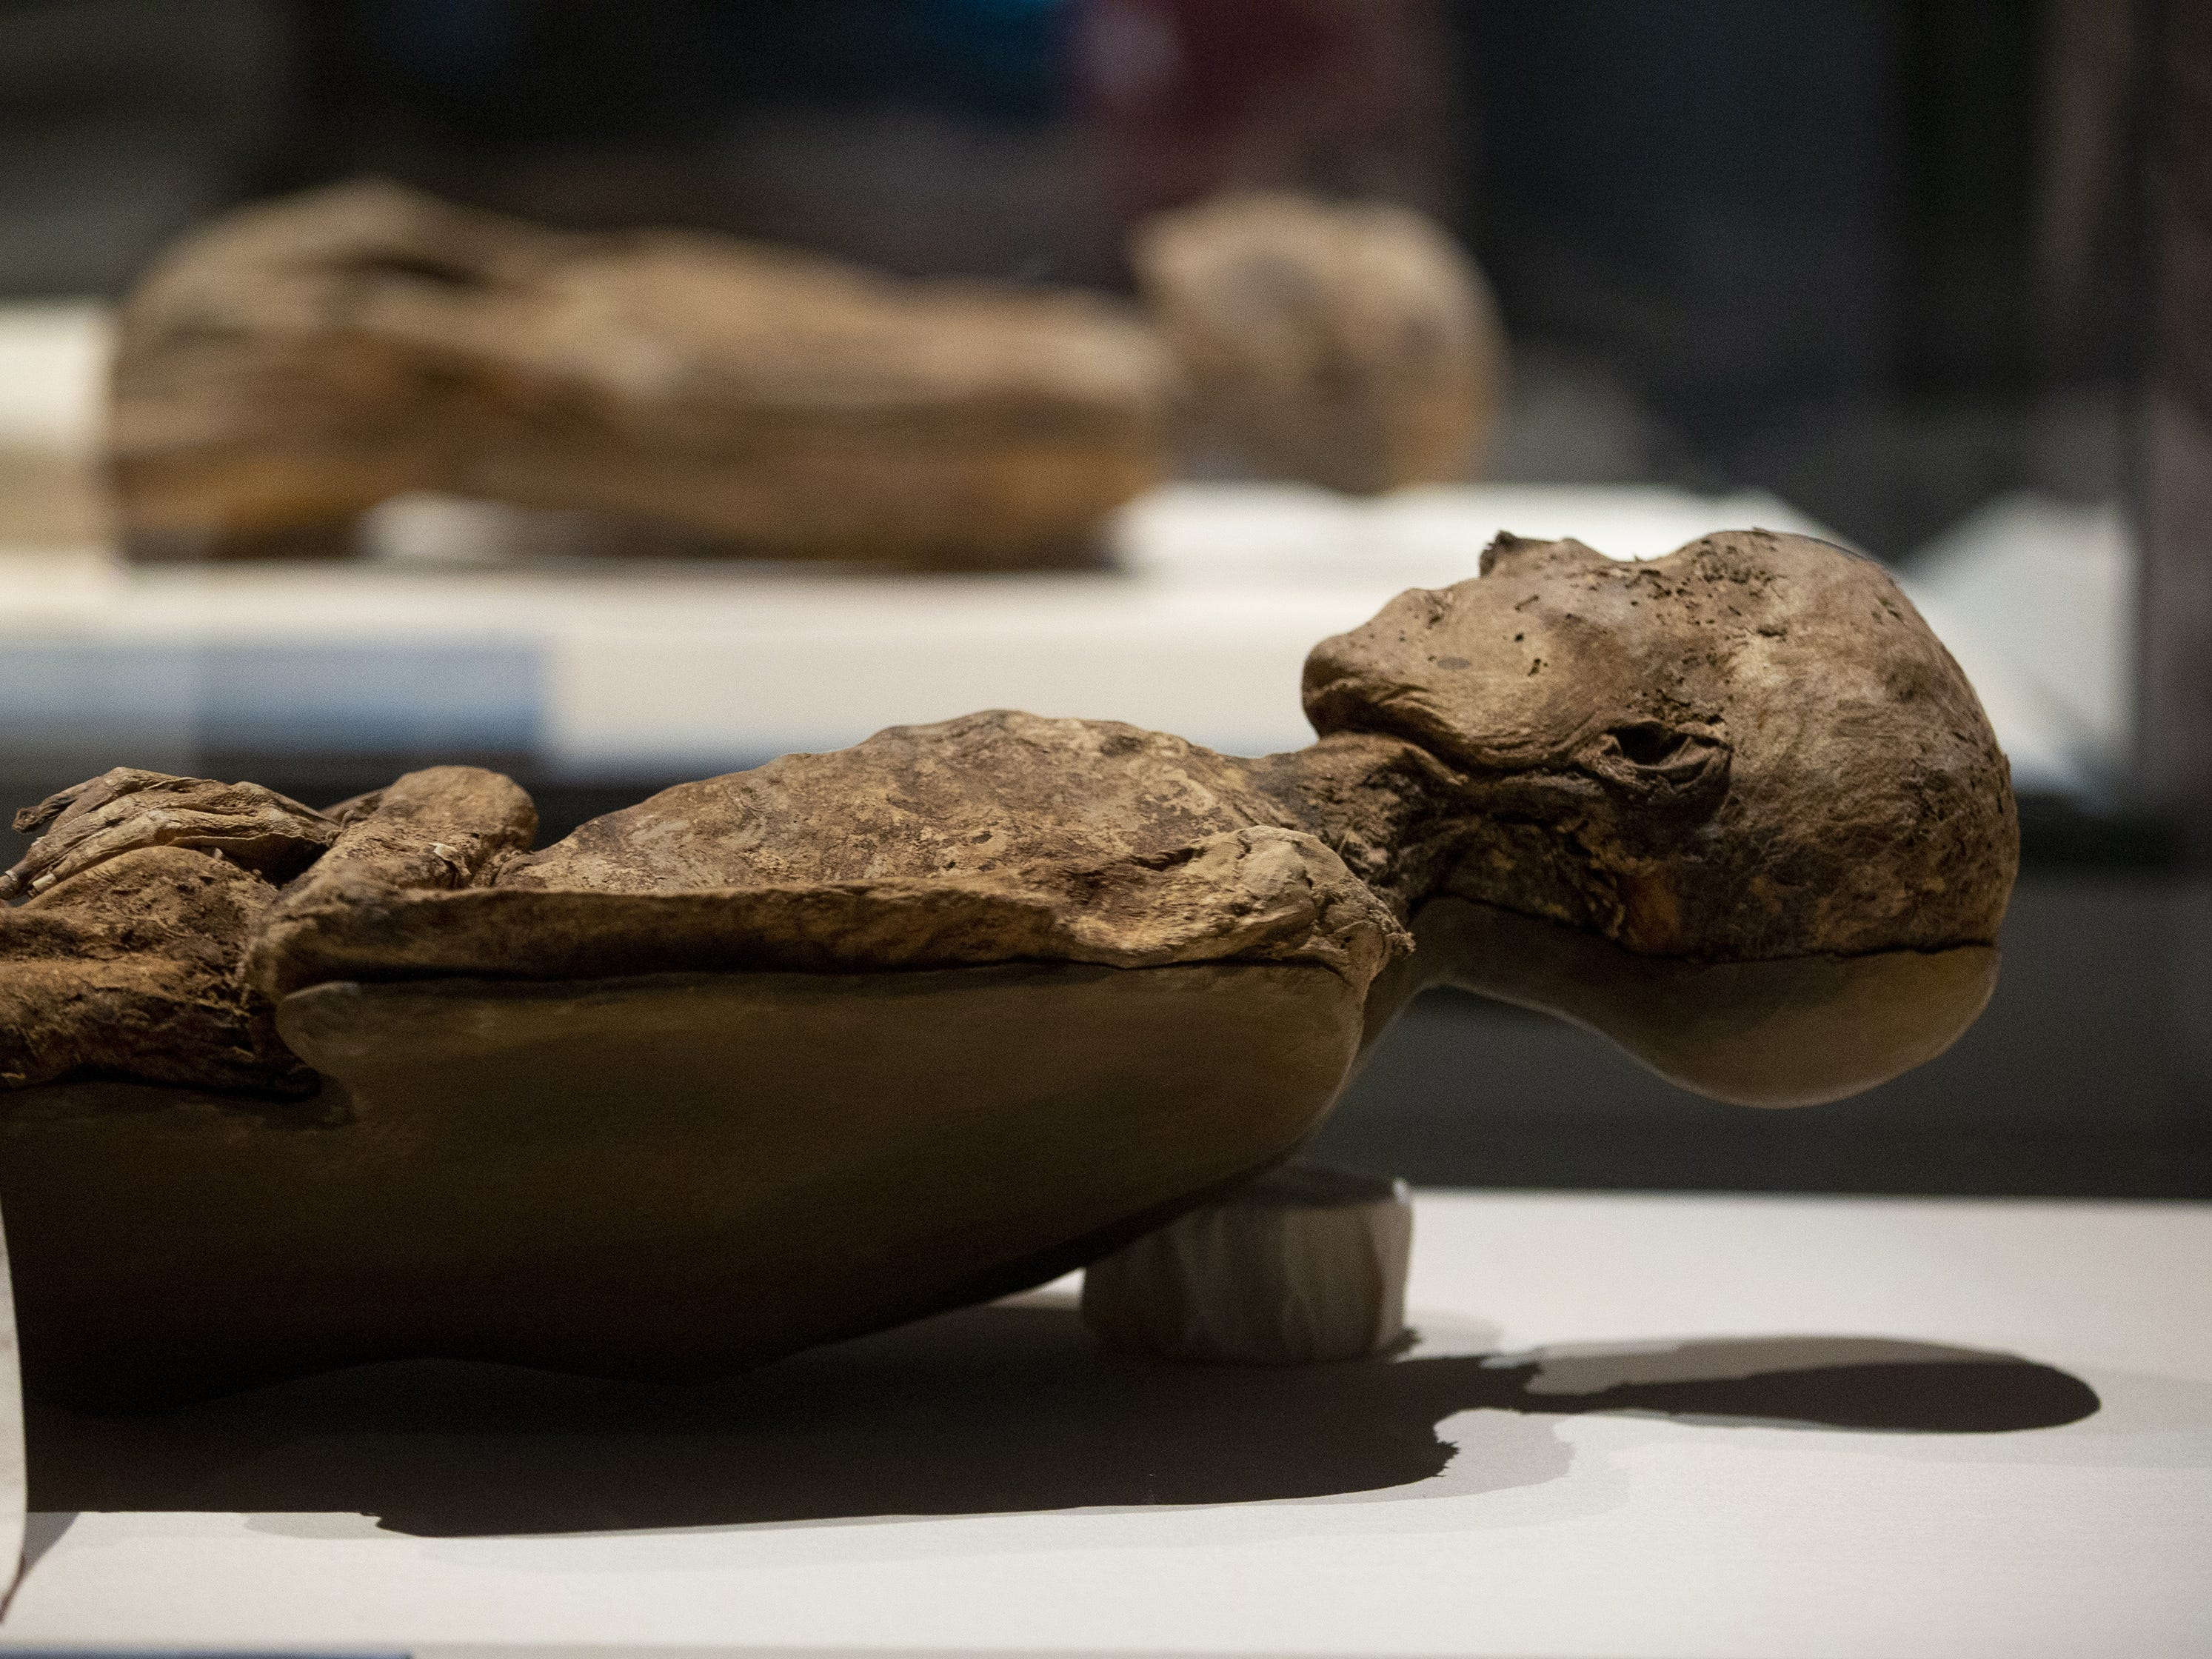 Baroness Schenck vo Geiern is displayed in the Mummies of the World: The Exhibition at the Arizona Science Center. She is a naturally preserved mummy found at Sommersdorf Castle.  The exhibit is open to the public from Feb. 10 through Sept. 2, 2019, and includes mummies from Egypt, Europe and the U.S.